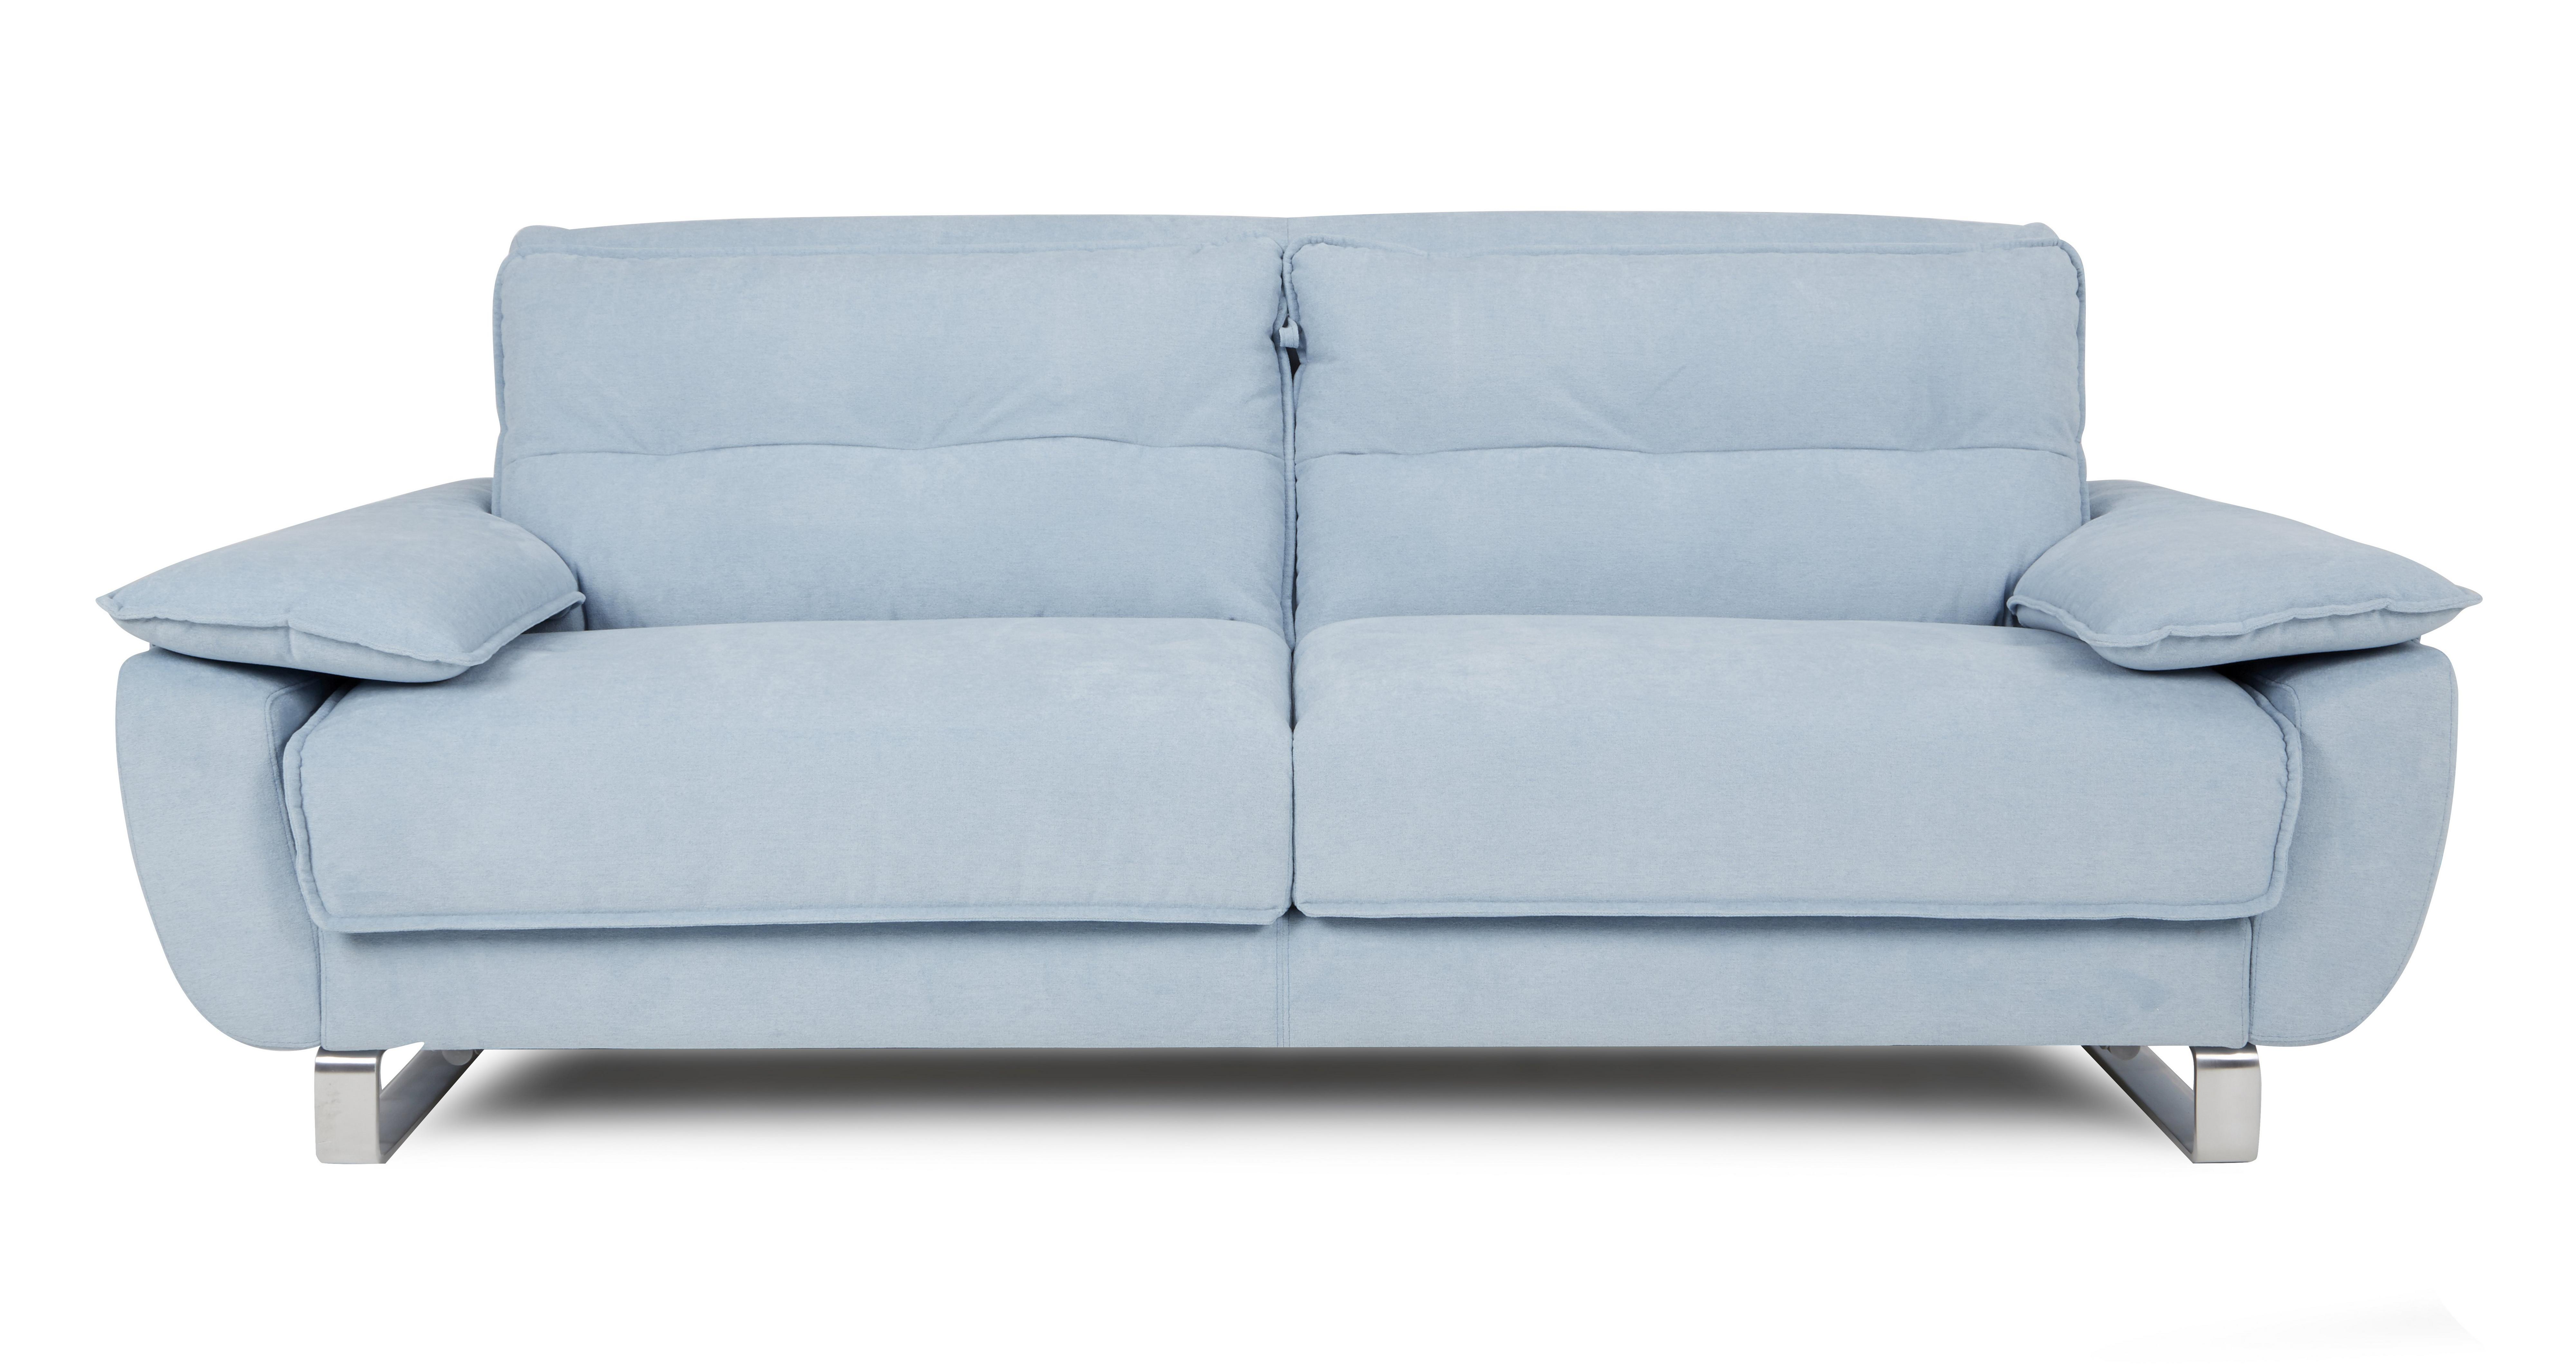 fling 4 seater sofa bed tiana | dfs